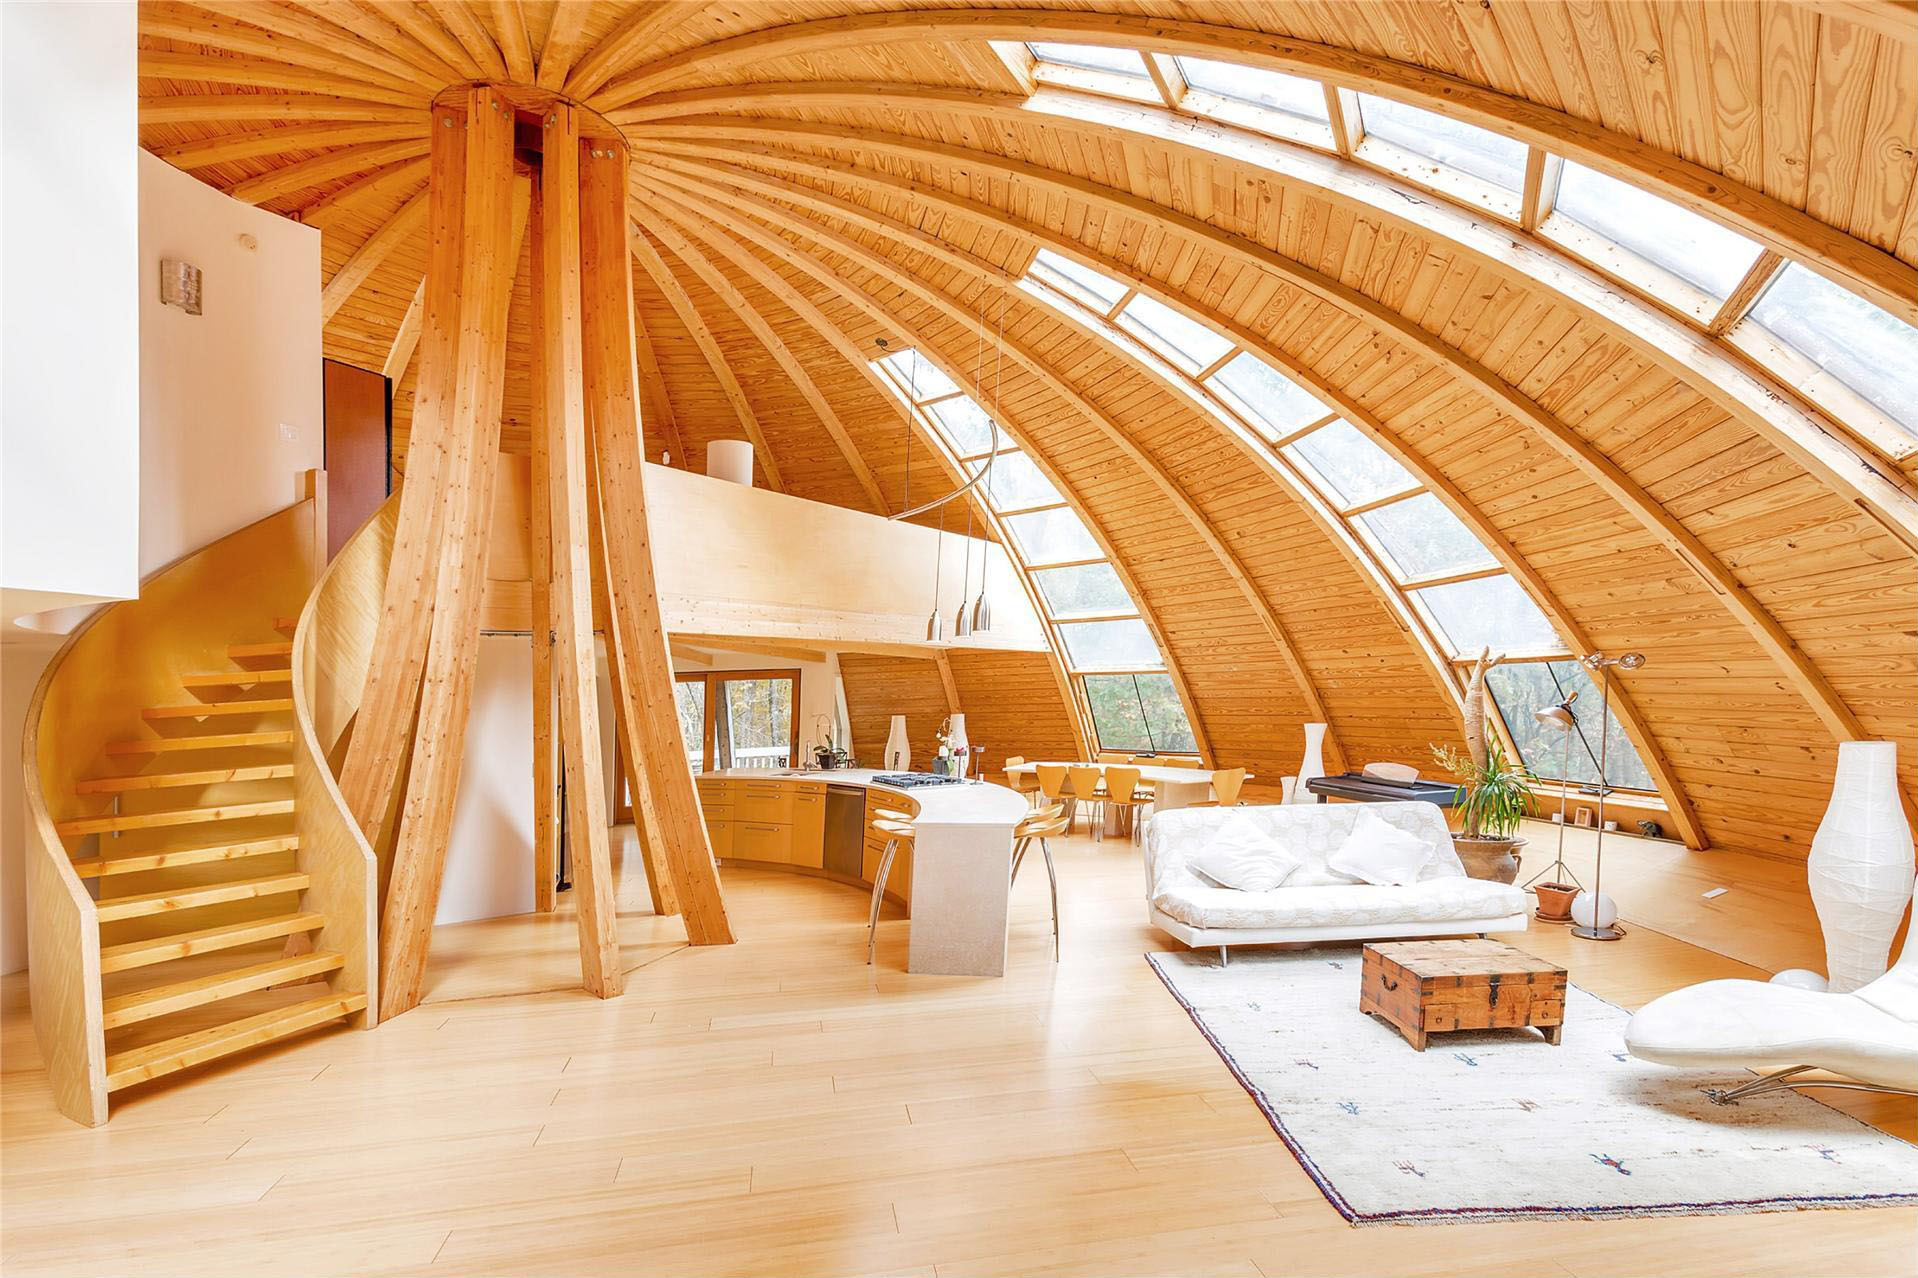 Flying saucer shaped house takes design to new heights Wooden interior